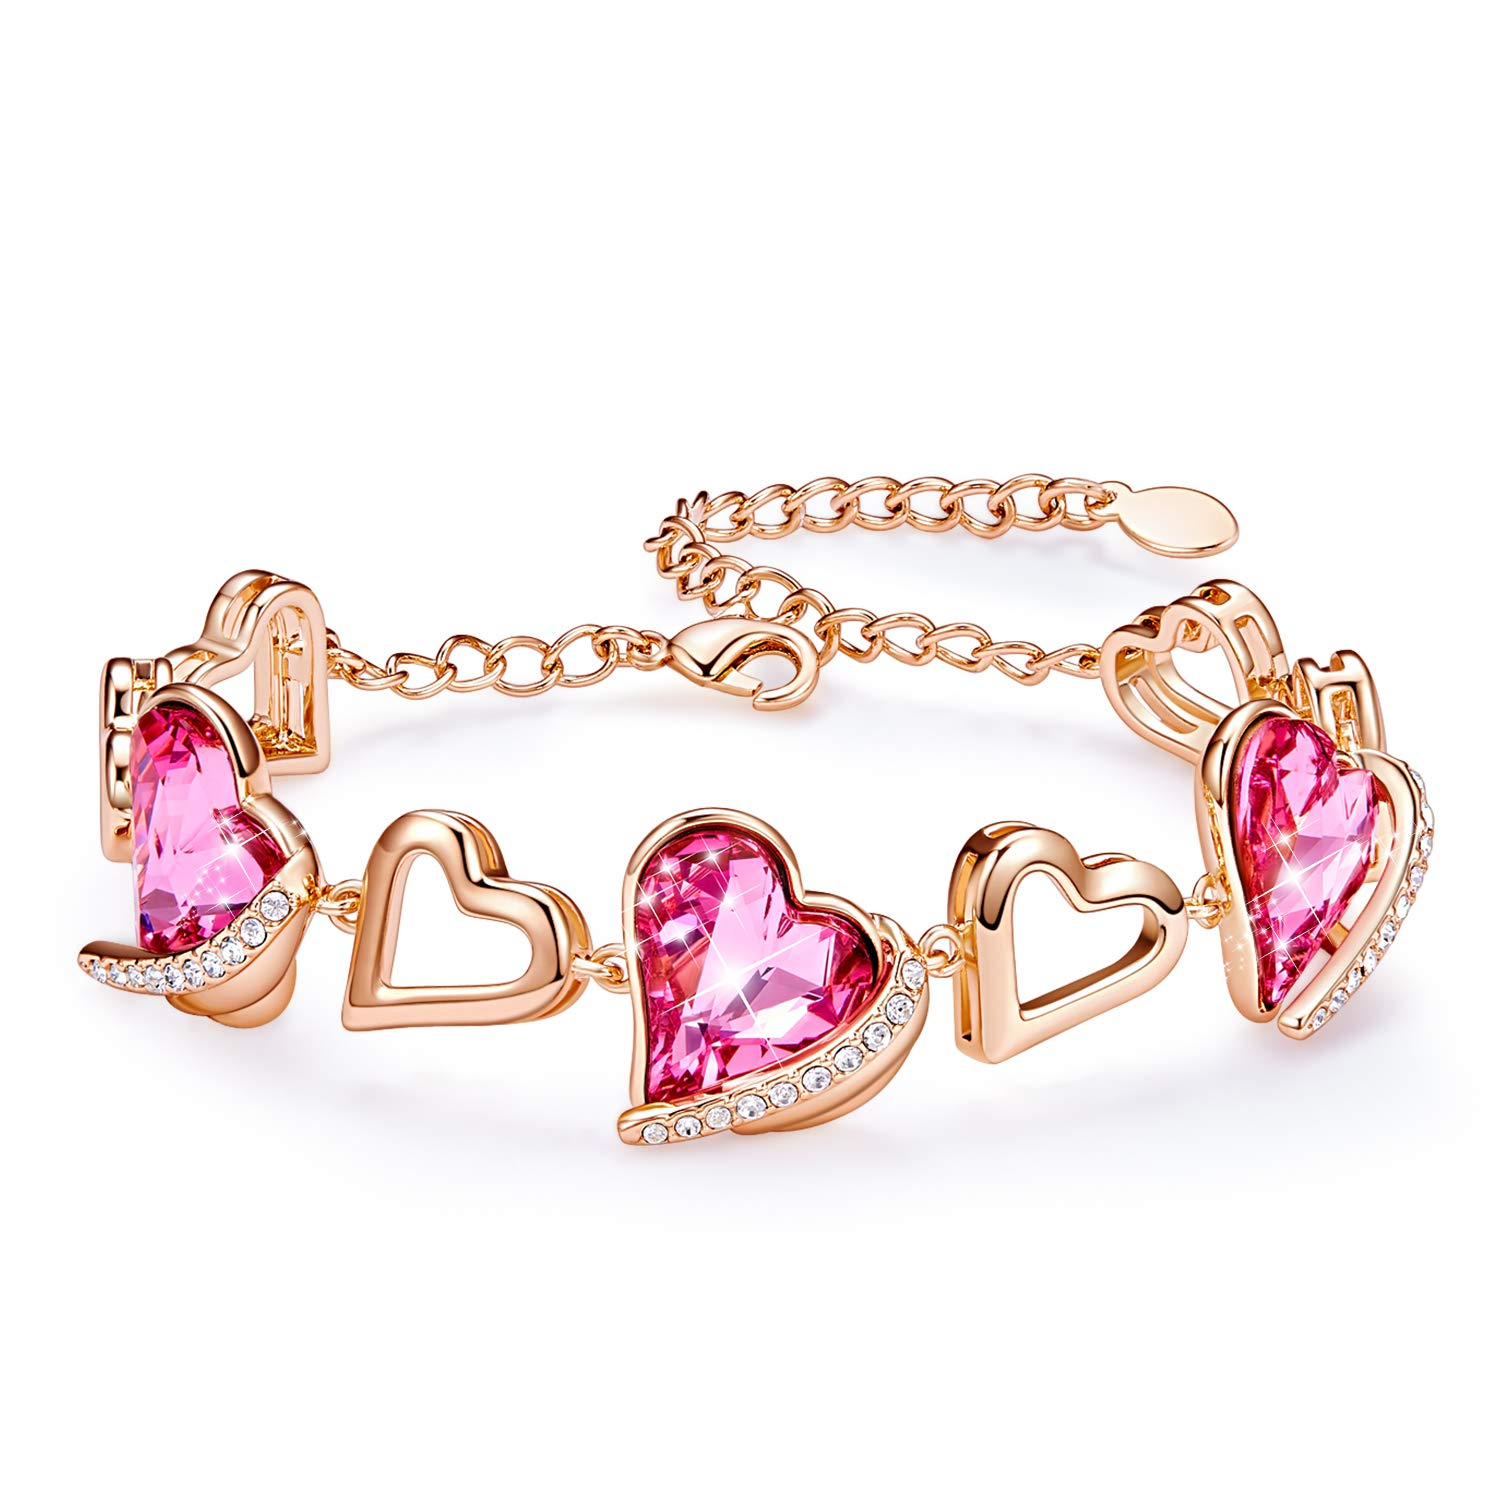 CDE Women Bracelets, Love Heart Bracelets Rose Gold Plated Tennis Bracelet Embellished with Crystals from Swarovski by CDE